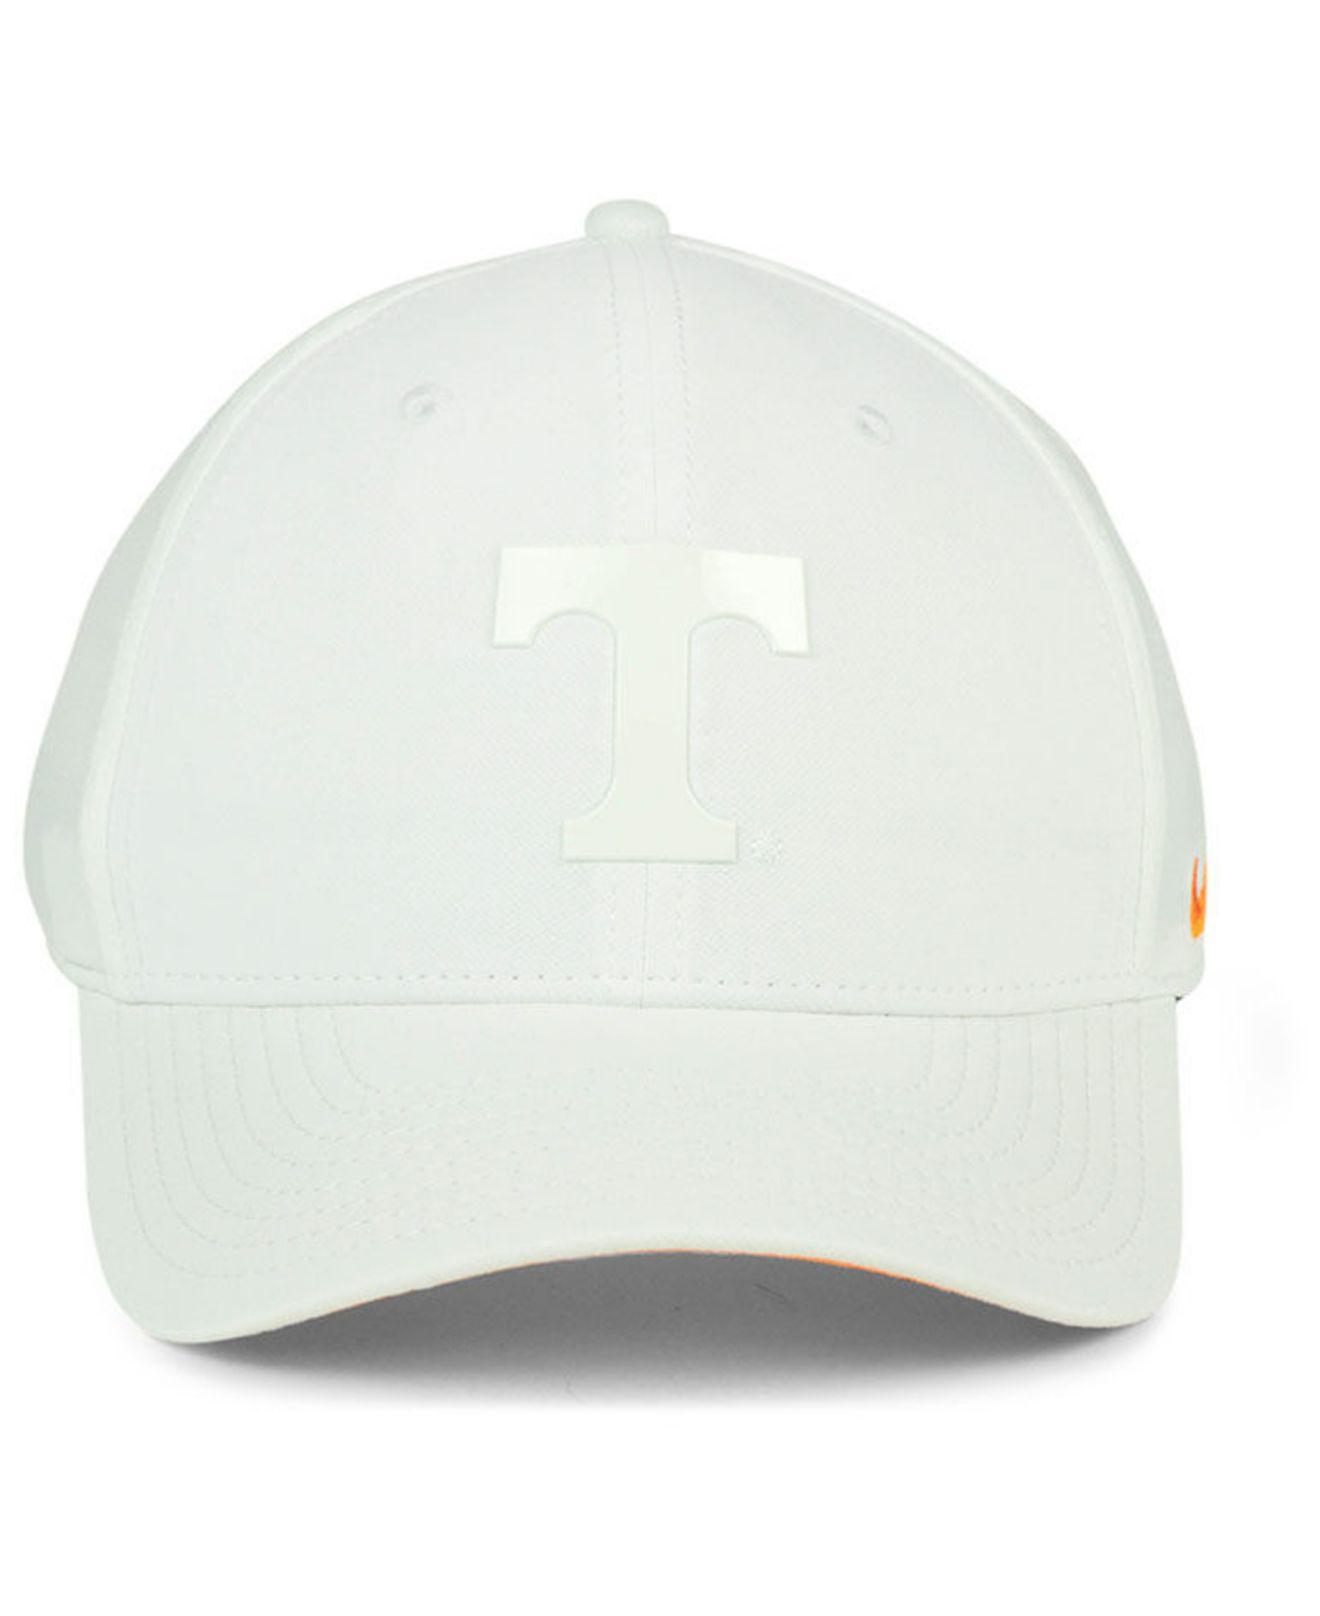 online store f79fe 91483 ... performance hat 3 46ee7 648cd  promo code for lyst nike tennessee  volunteers col cap in white for men 2af0f c3f90